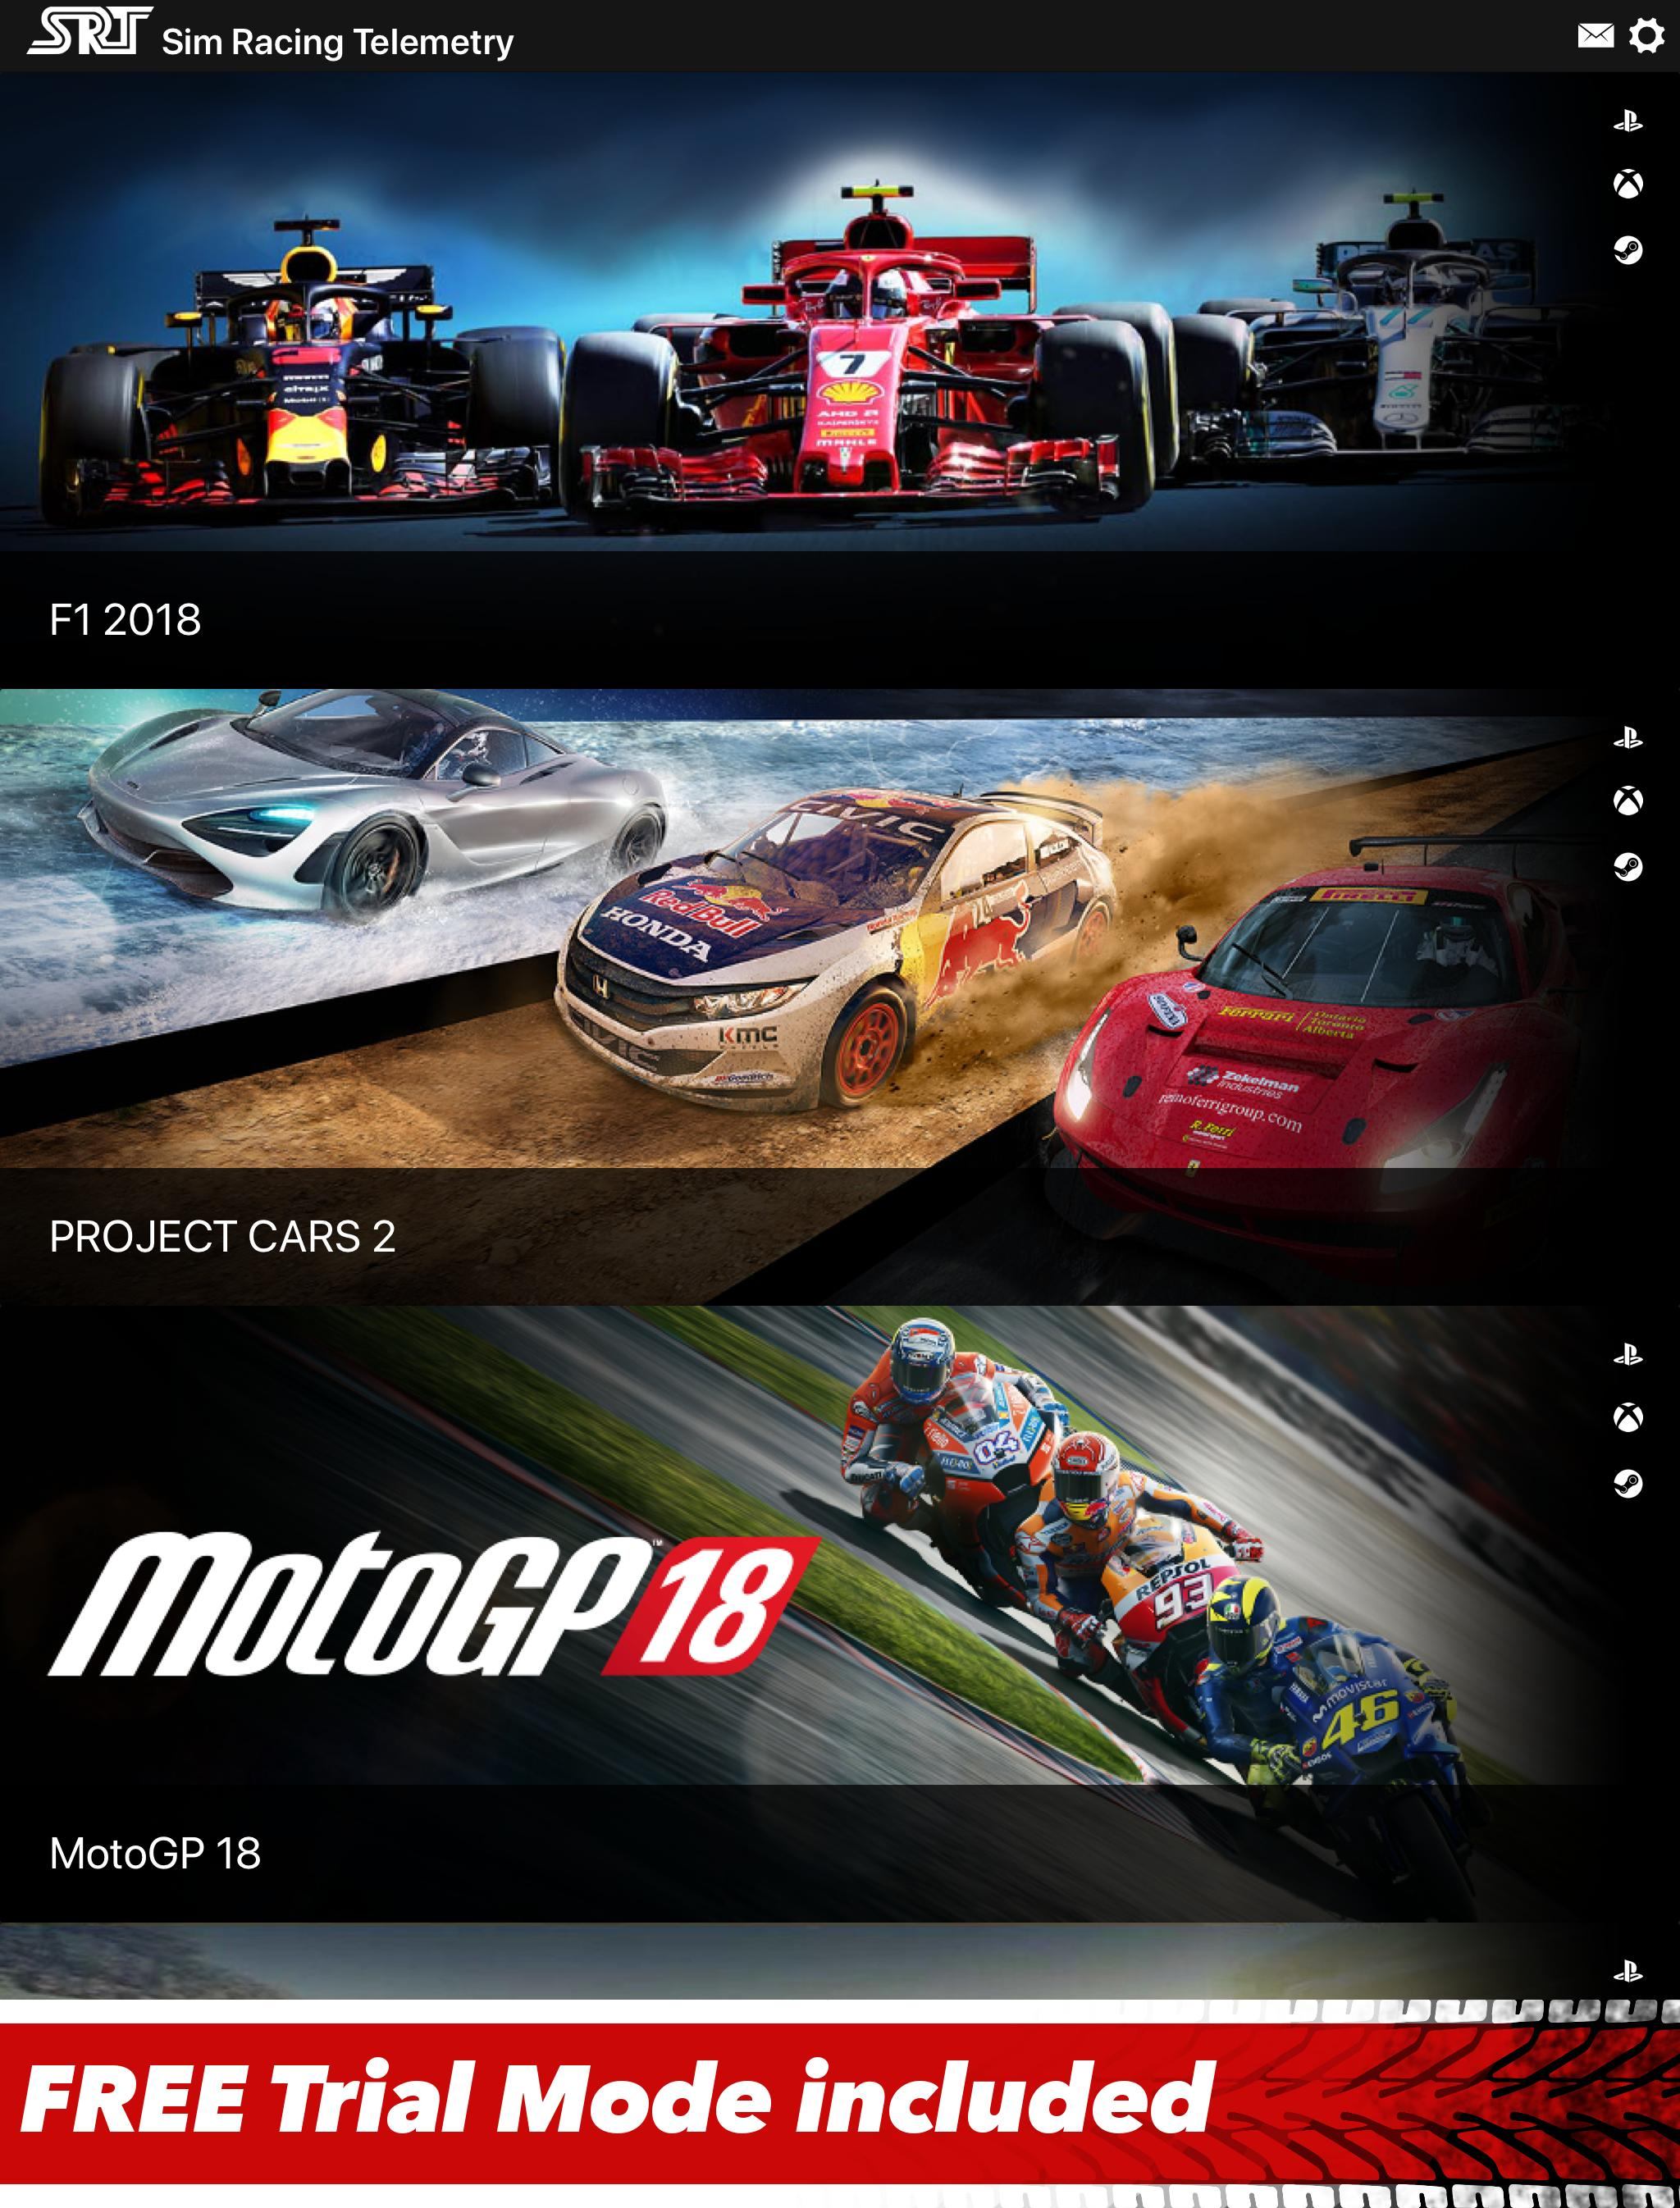 Sim Racing Telemetry for Android - APK Download